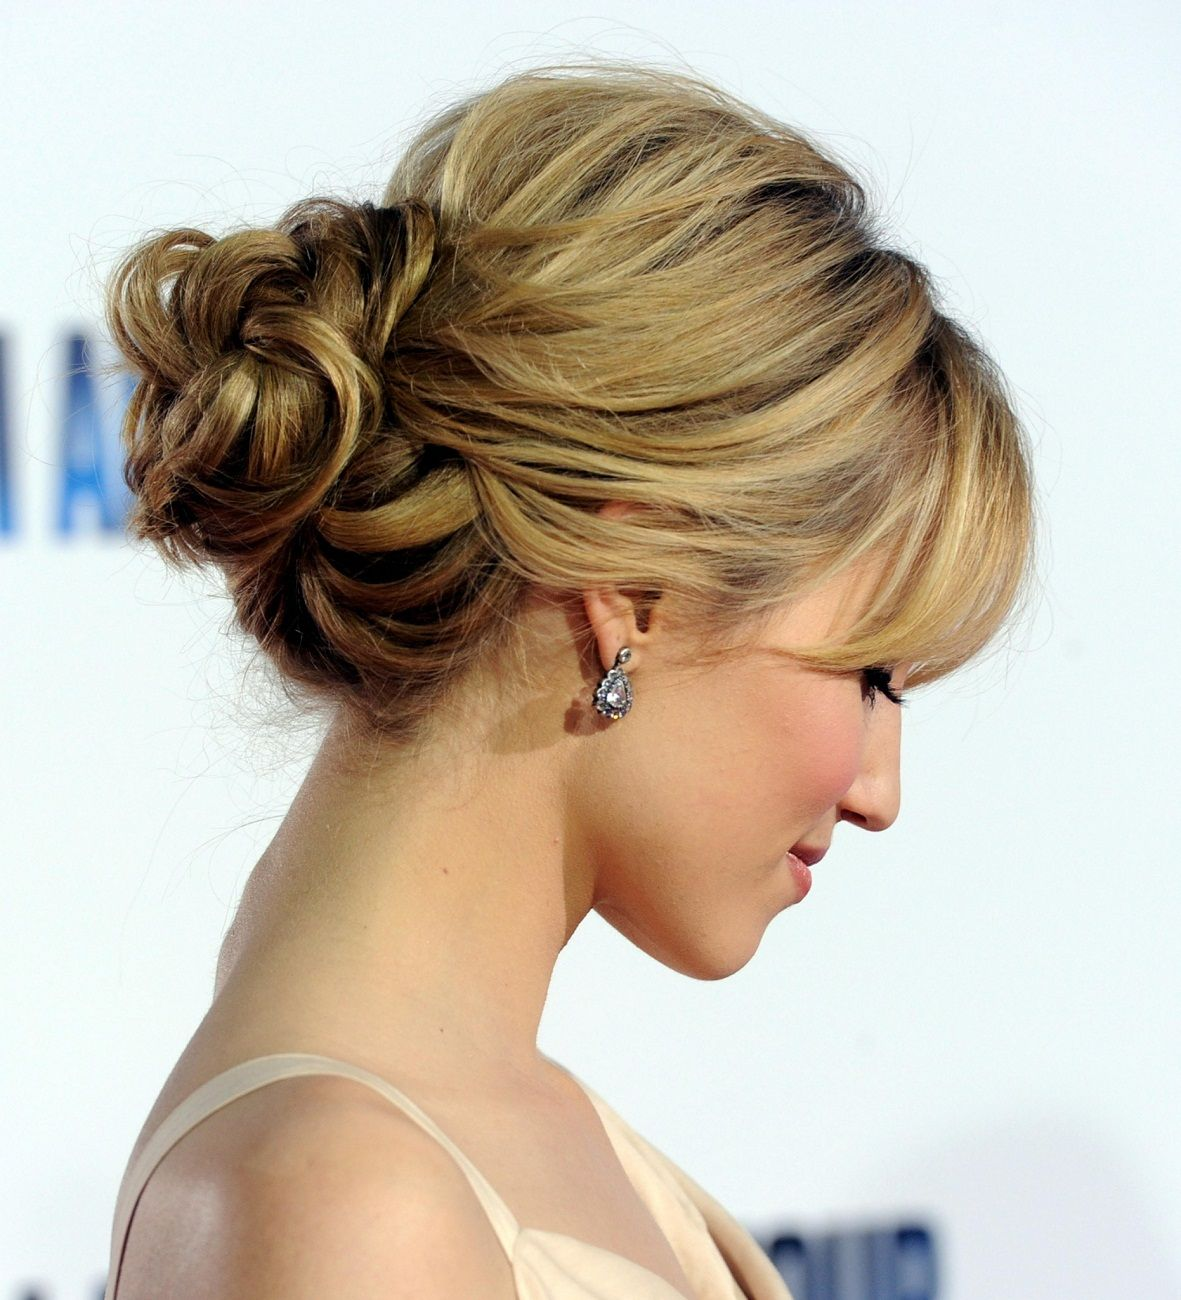 Formal hairstyles for long hair down formal hairstyles pinterest